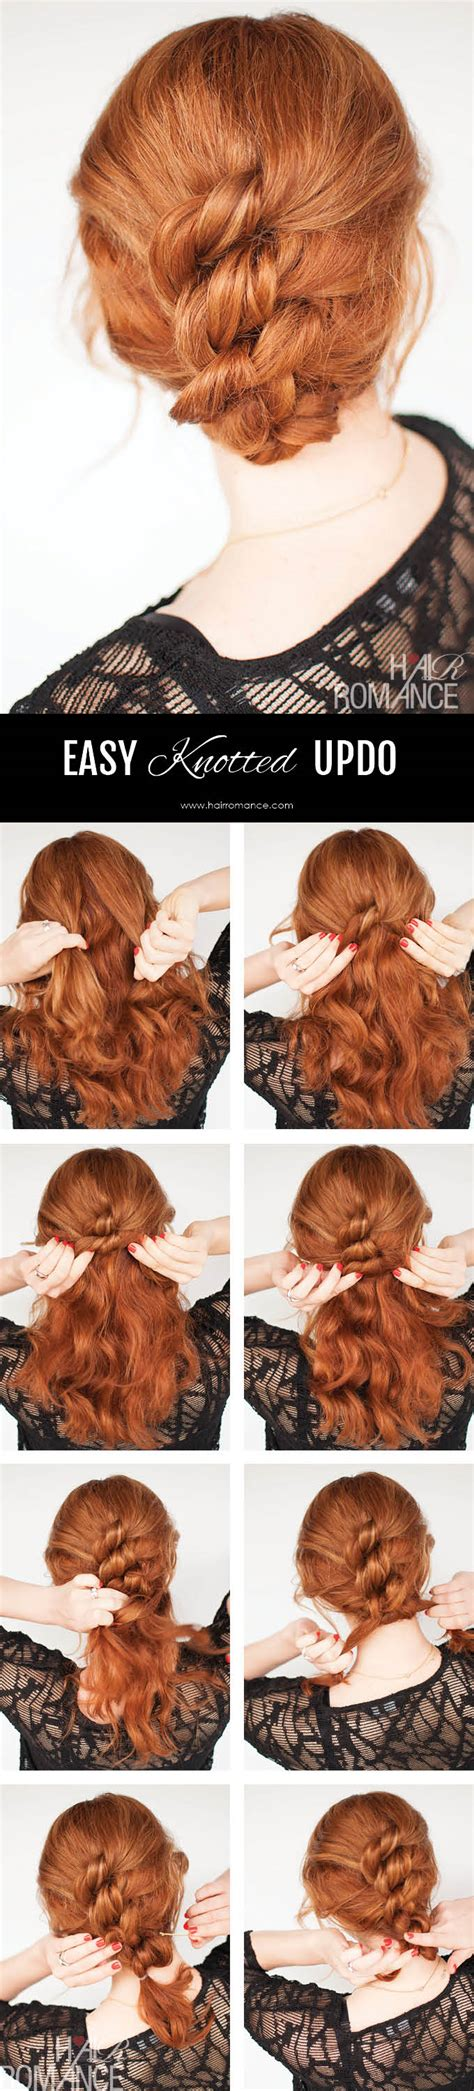 easy hairstyle tutorials for hair easy knotted hairstyle tutorial hair